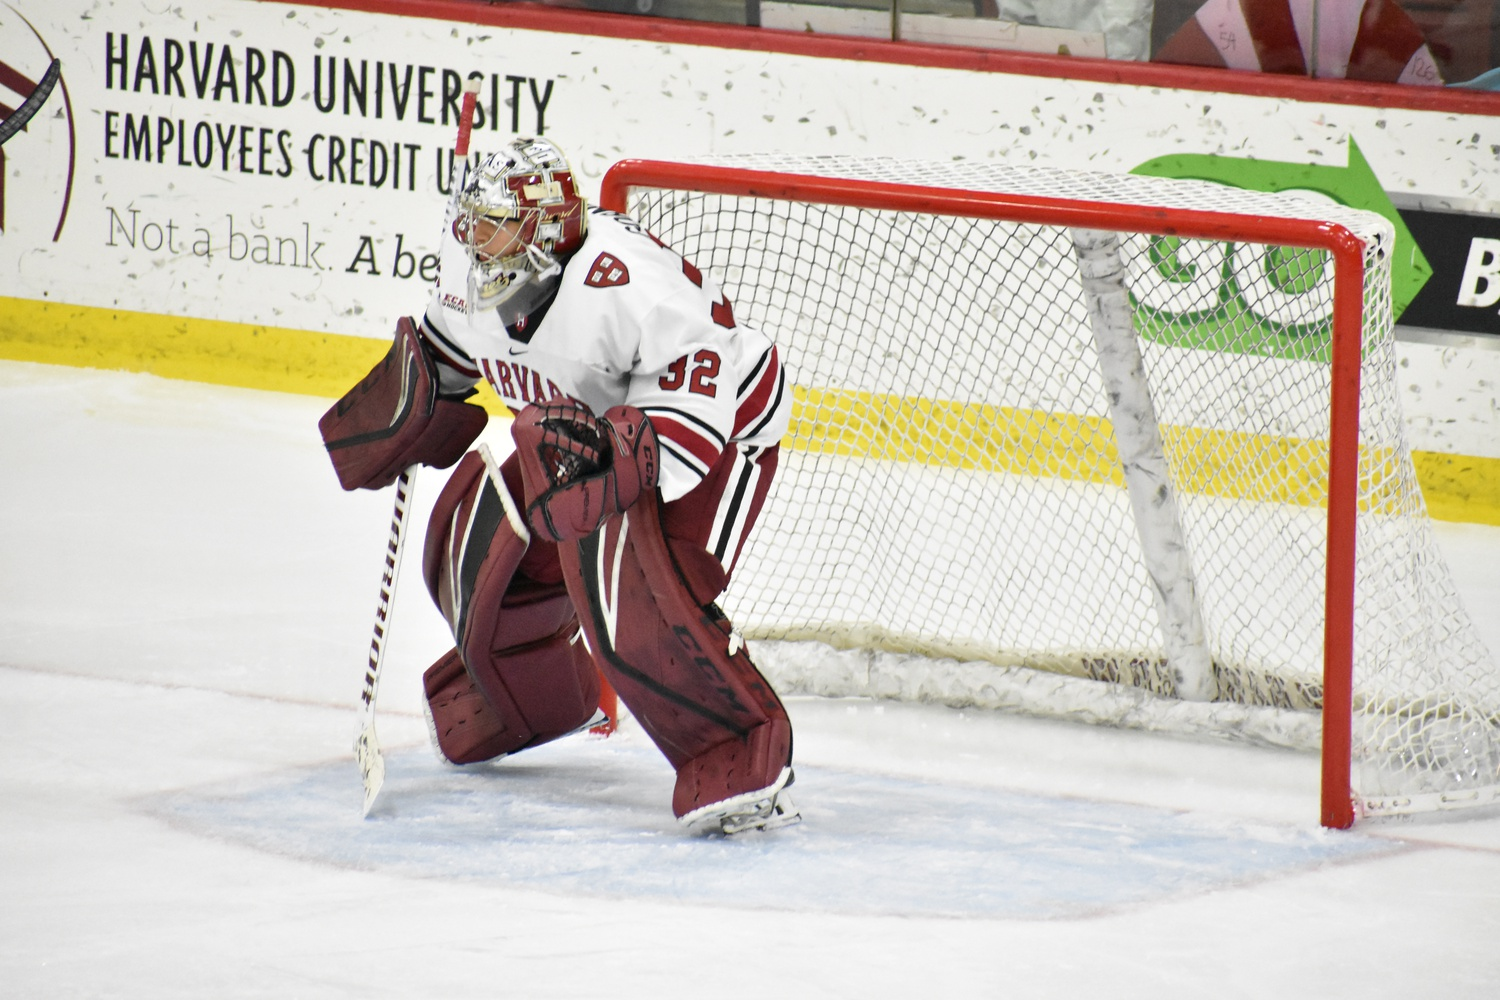 Gornet's .907 save percentage is a few points lower than his teammate Gibson's, but Harvard's two goalies both have the same winning percentage.